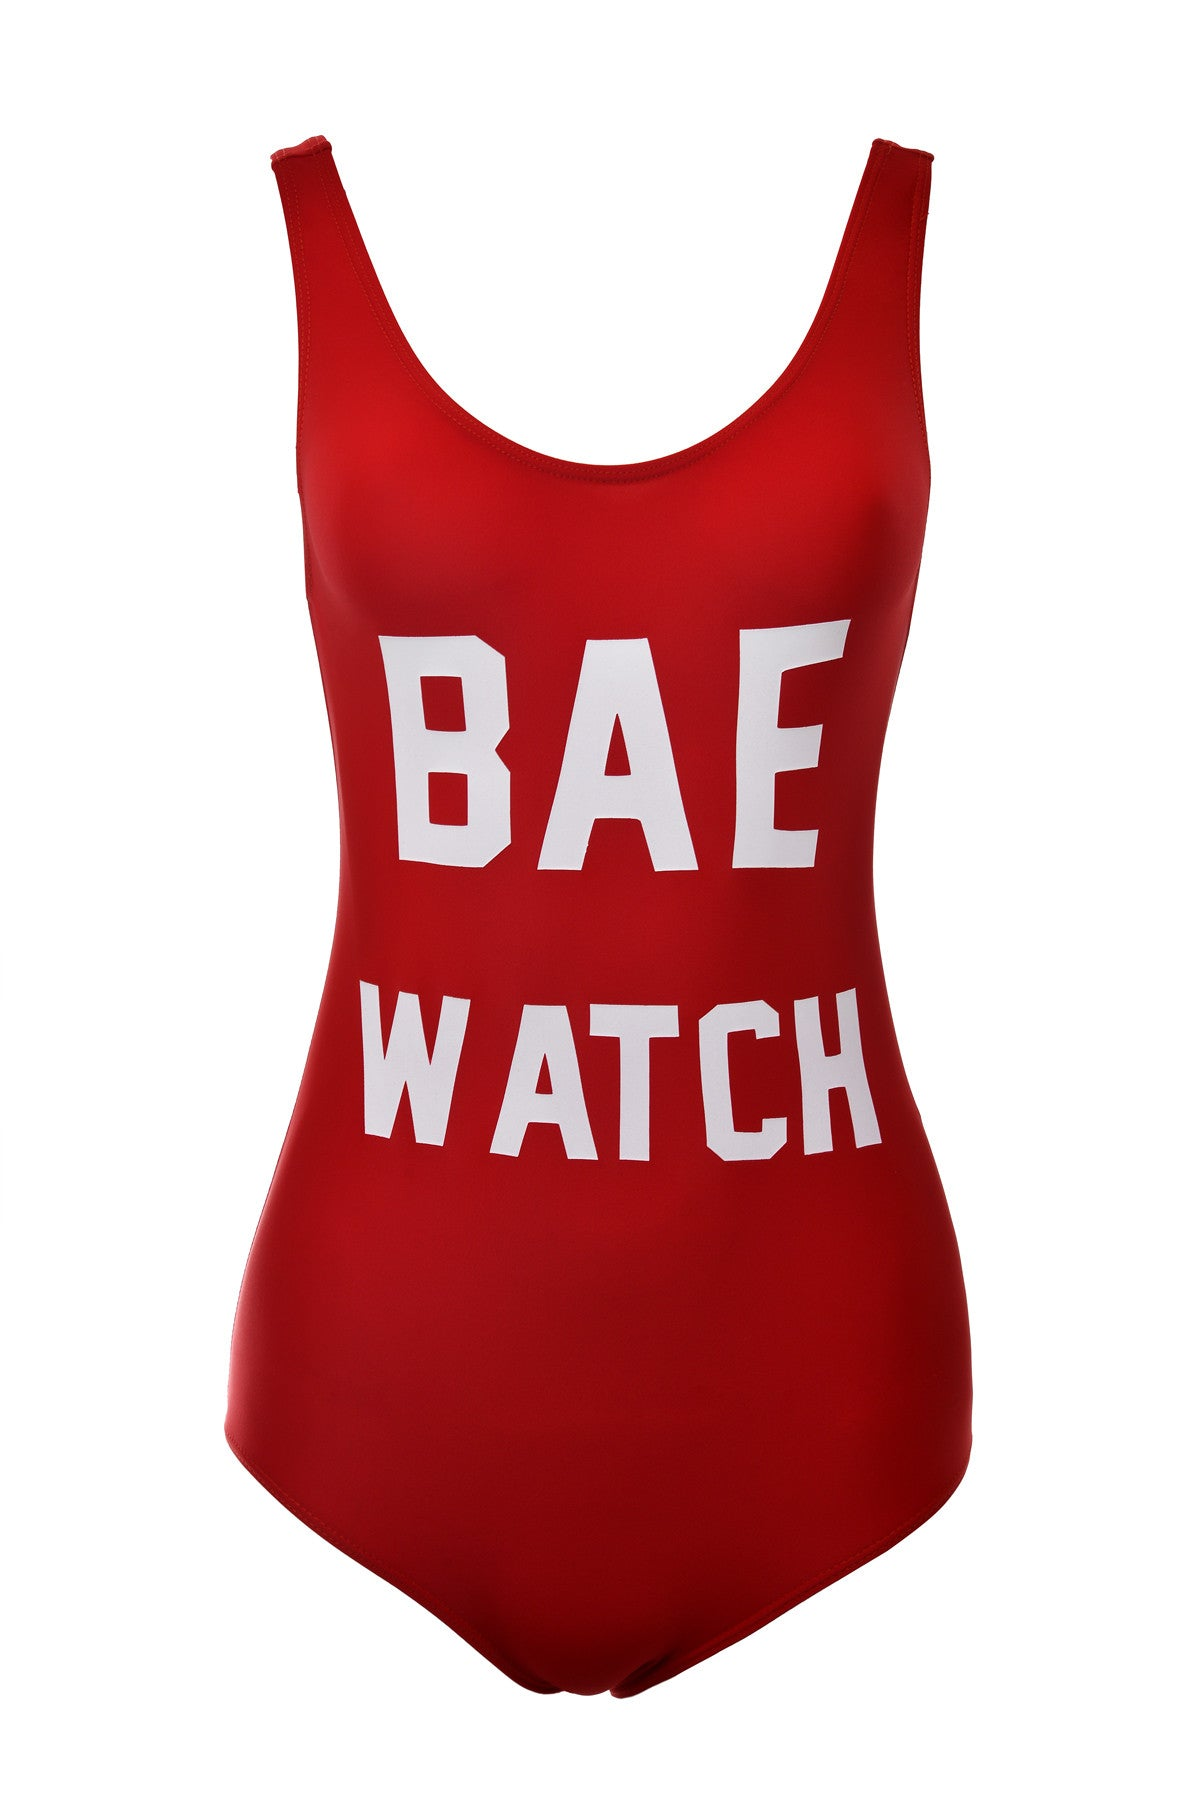 Bae Watch Red One Piece - Fashion Effect Store  - 1